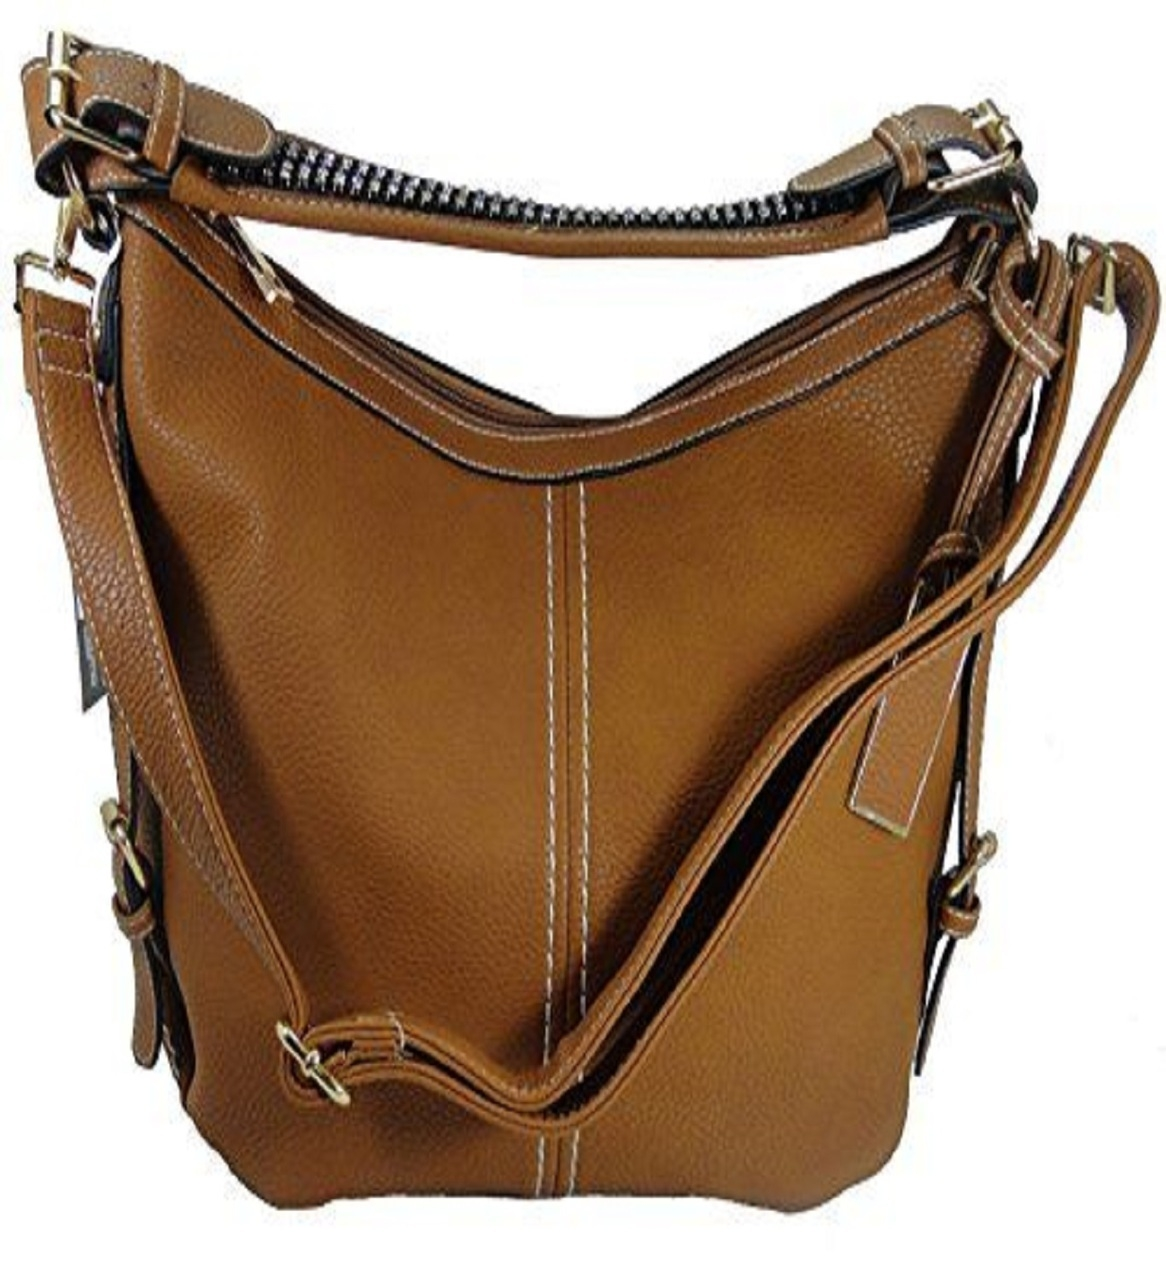 """Lisa"" Women's Vegan Leather Tan Rhinestone Concealed Handbag has an actual Holster that means no printing on your purse. No printing with this included gun holster for your leather concealed handbag."